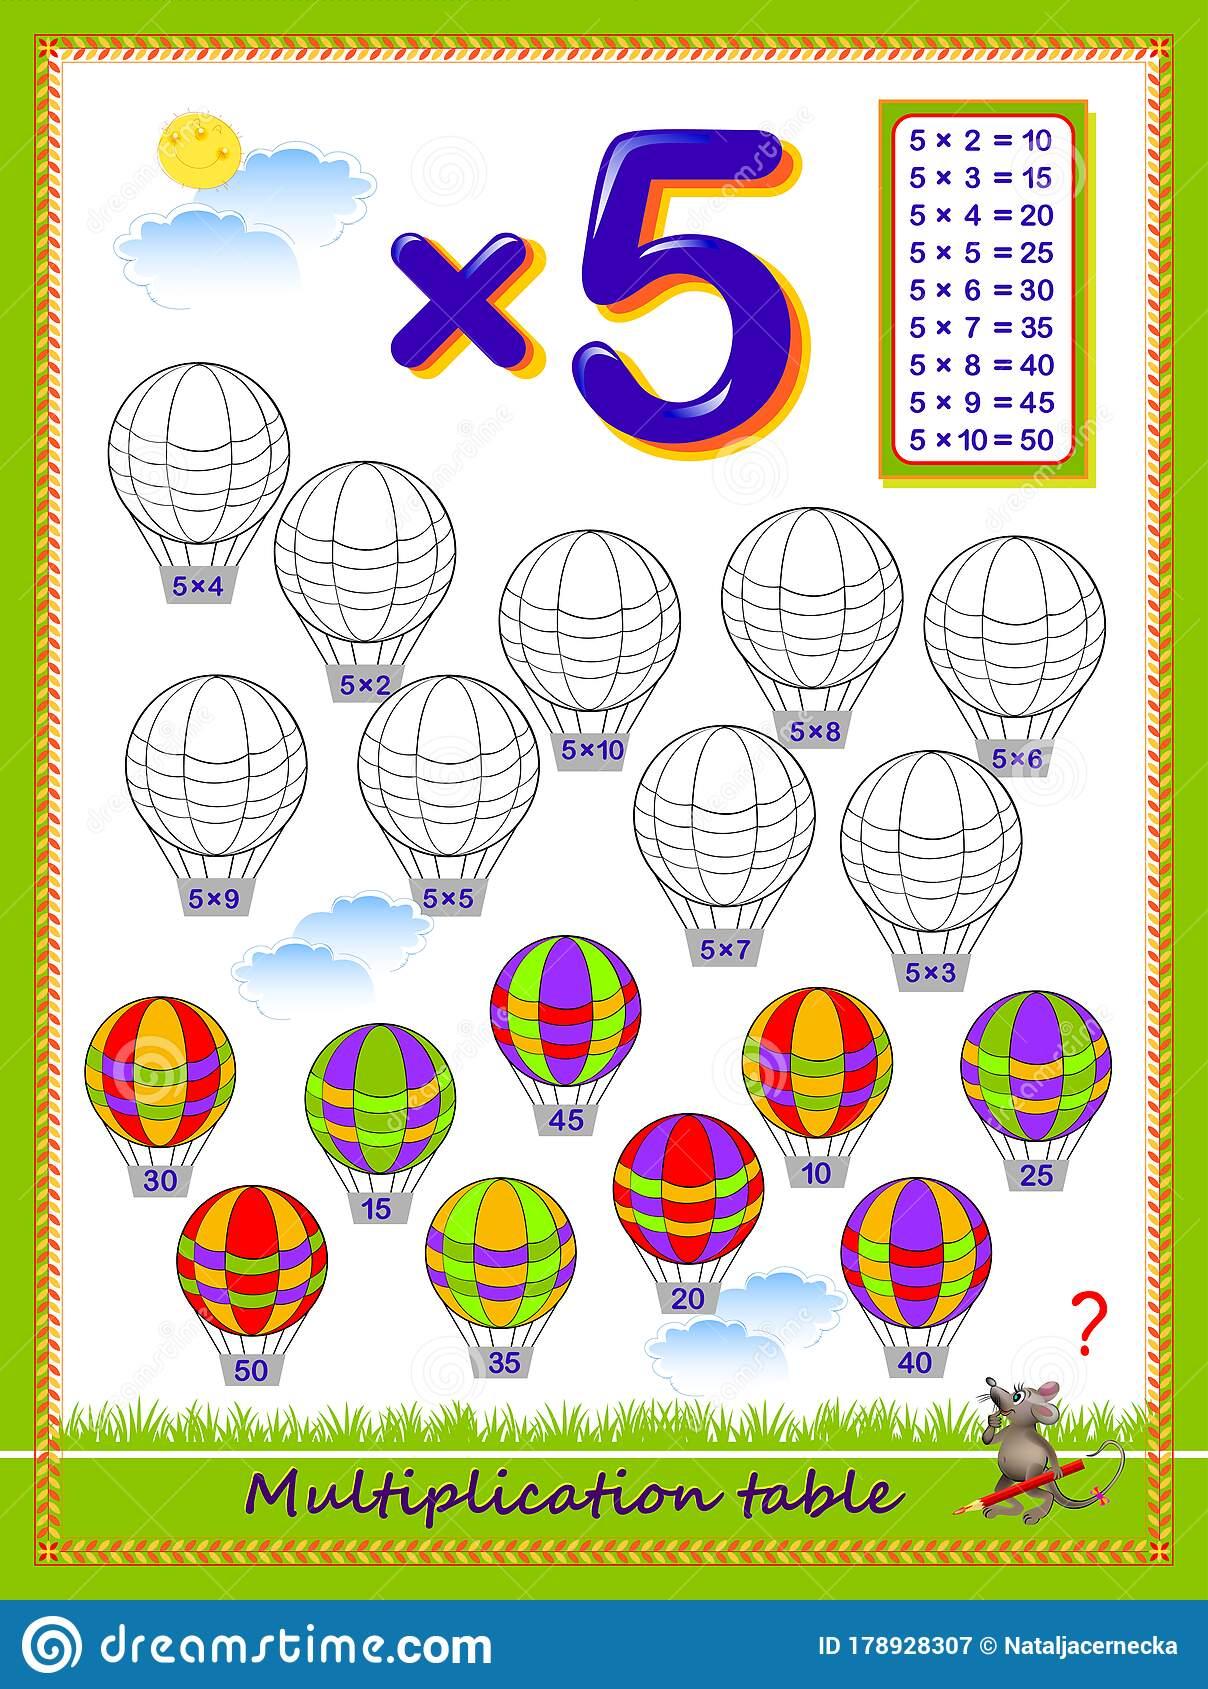 Multiplication Table By 5 For Kids Solve Examples And